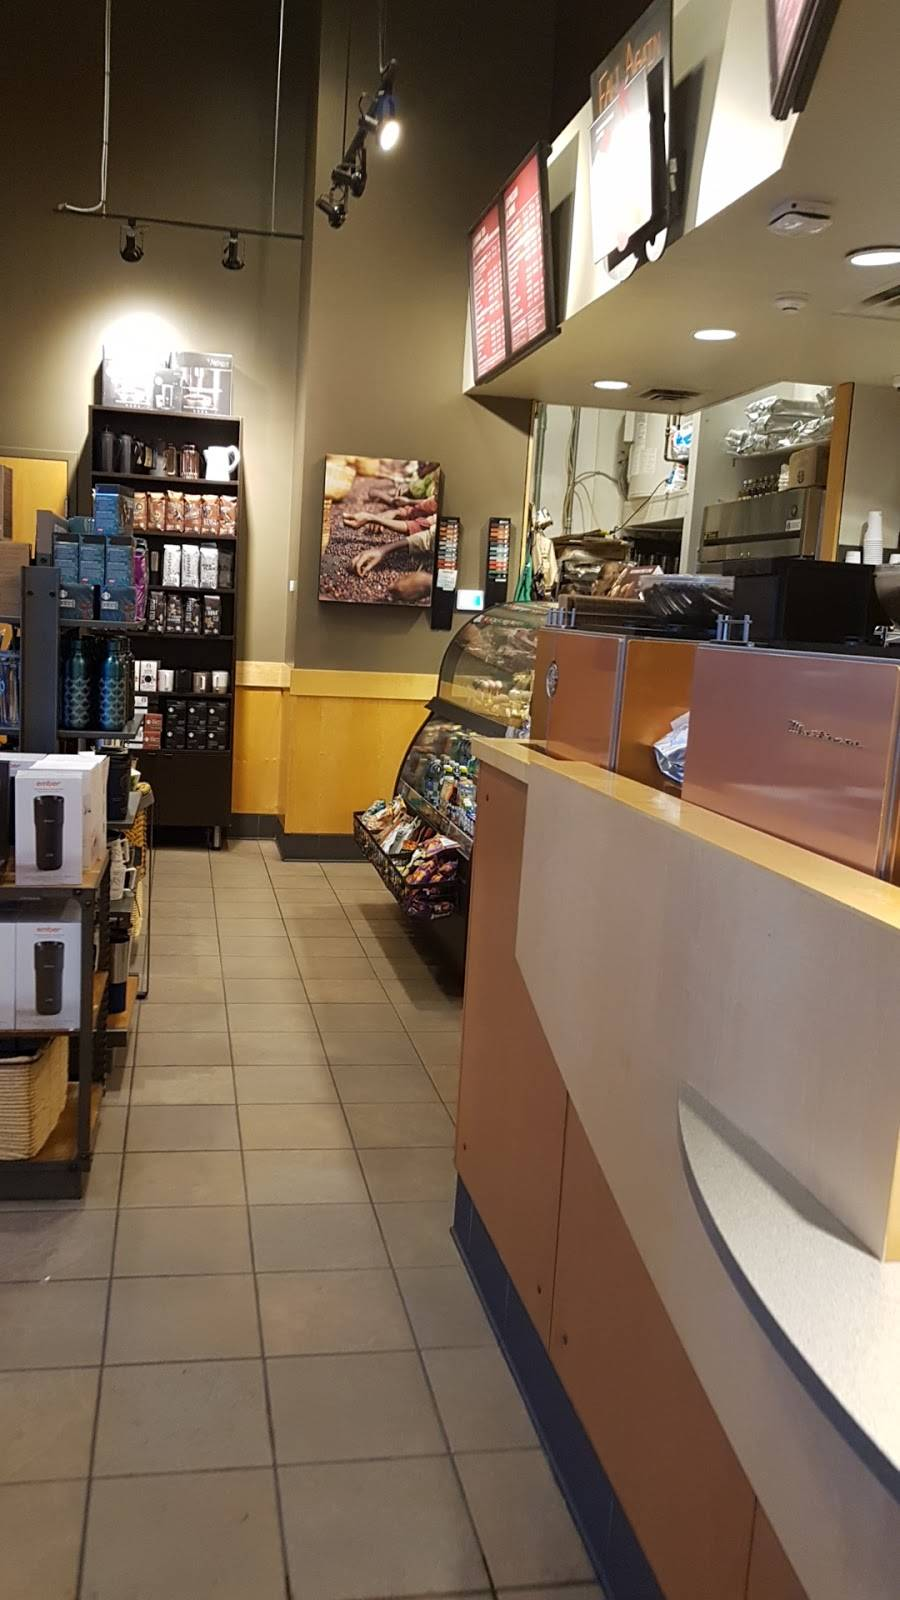 Starbucks - cafe  | Photo 4 of 8 | Address: 194 Commercial Blvd, Tecumseh, ON N9K 1G5, Canada | Phone: (519) 735-5110